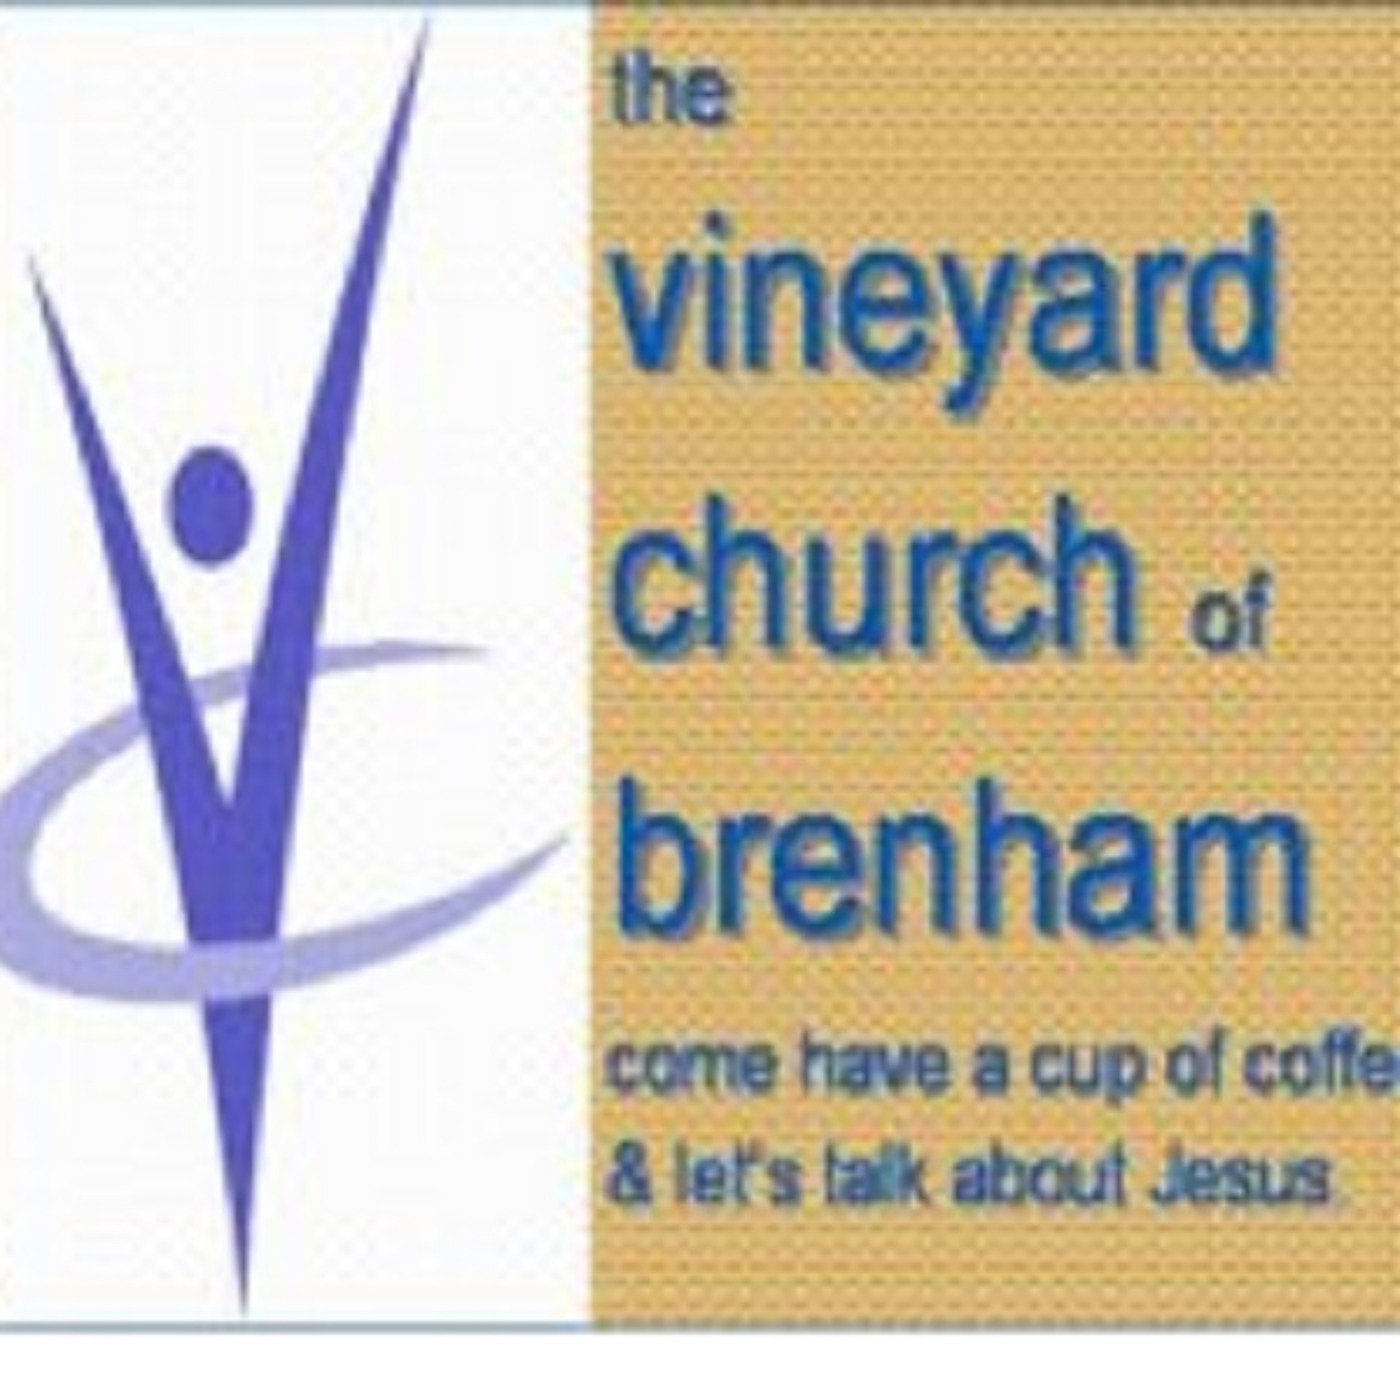 Vineyard Church Brenham, TX.